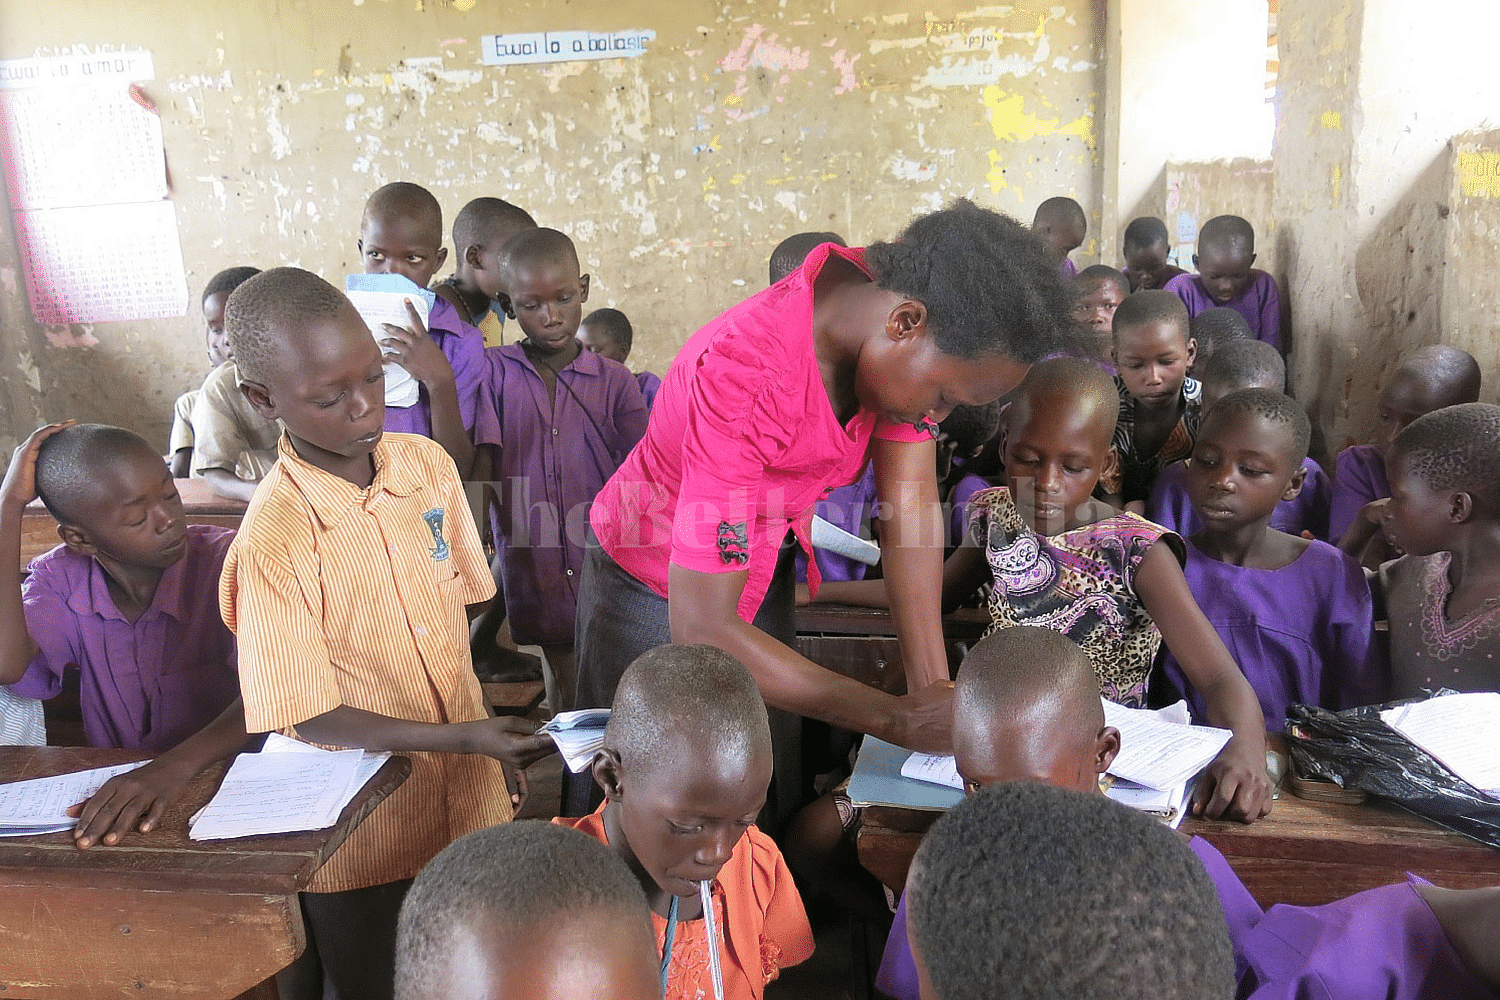 STIR Education operations in Uganda